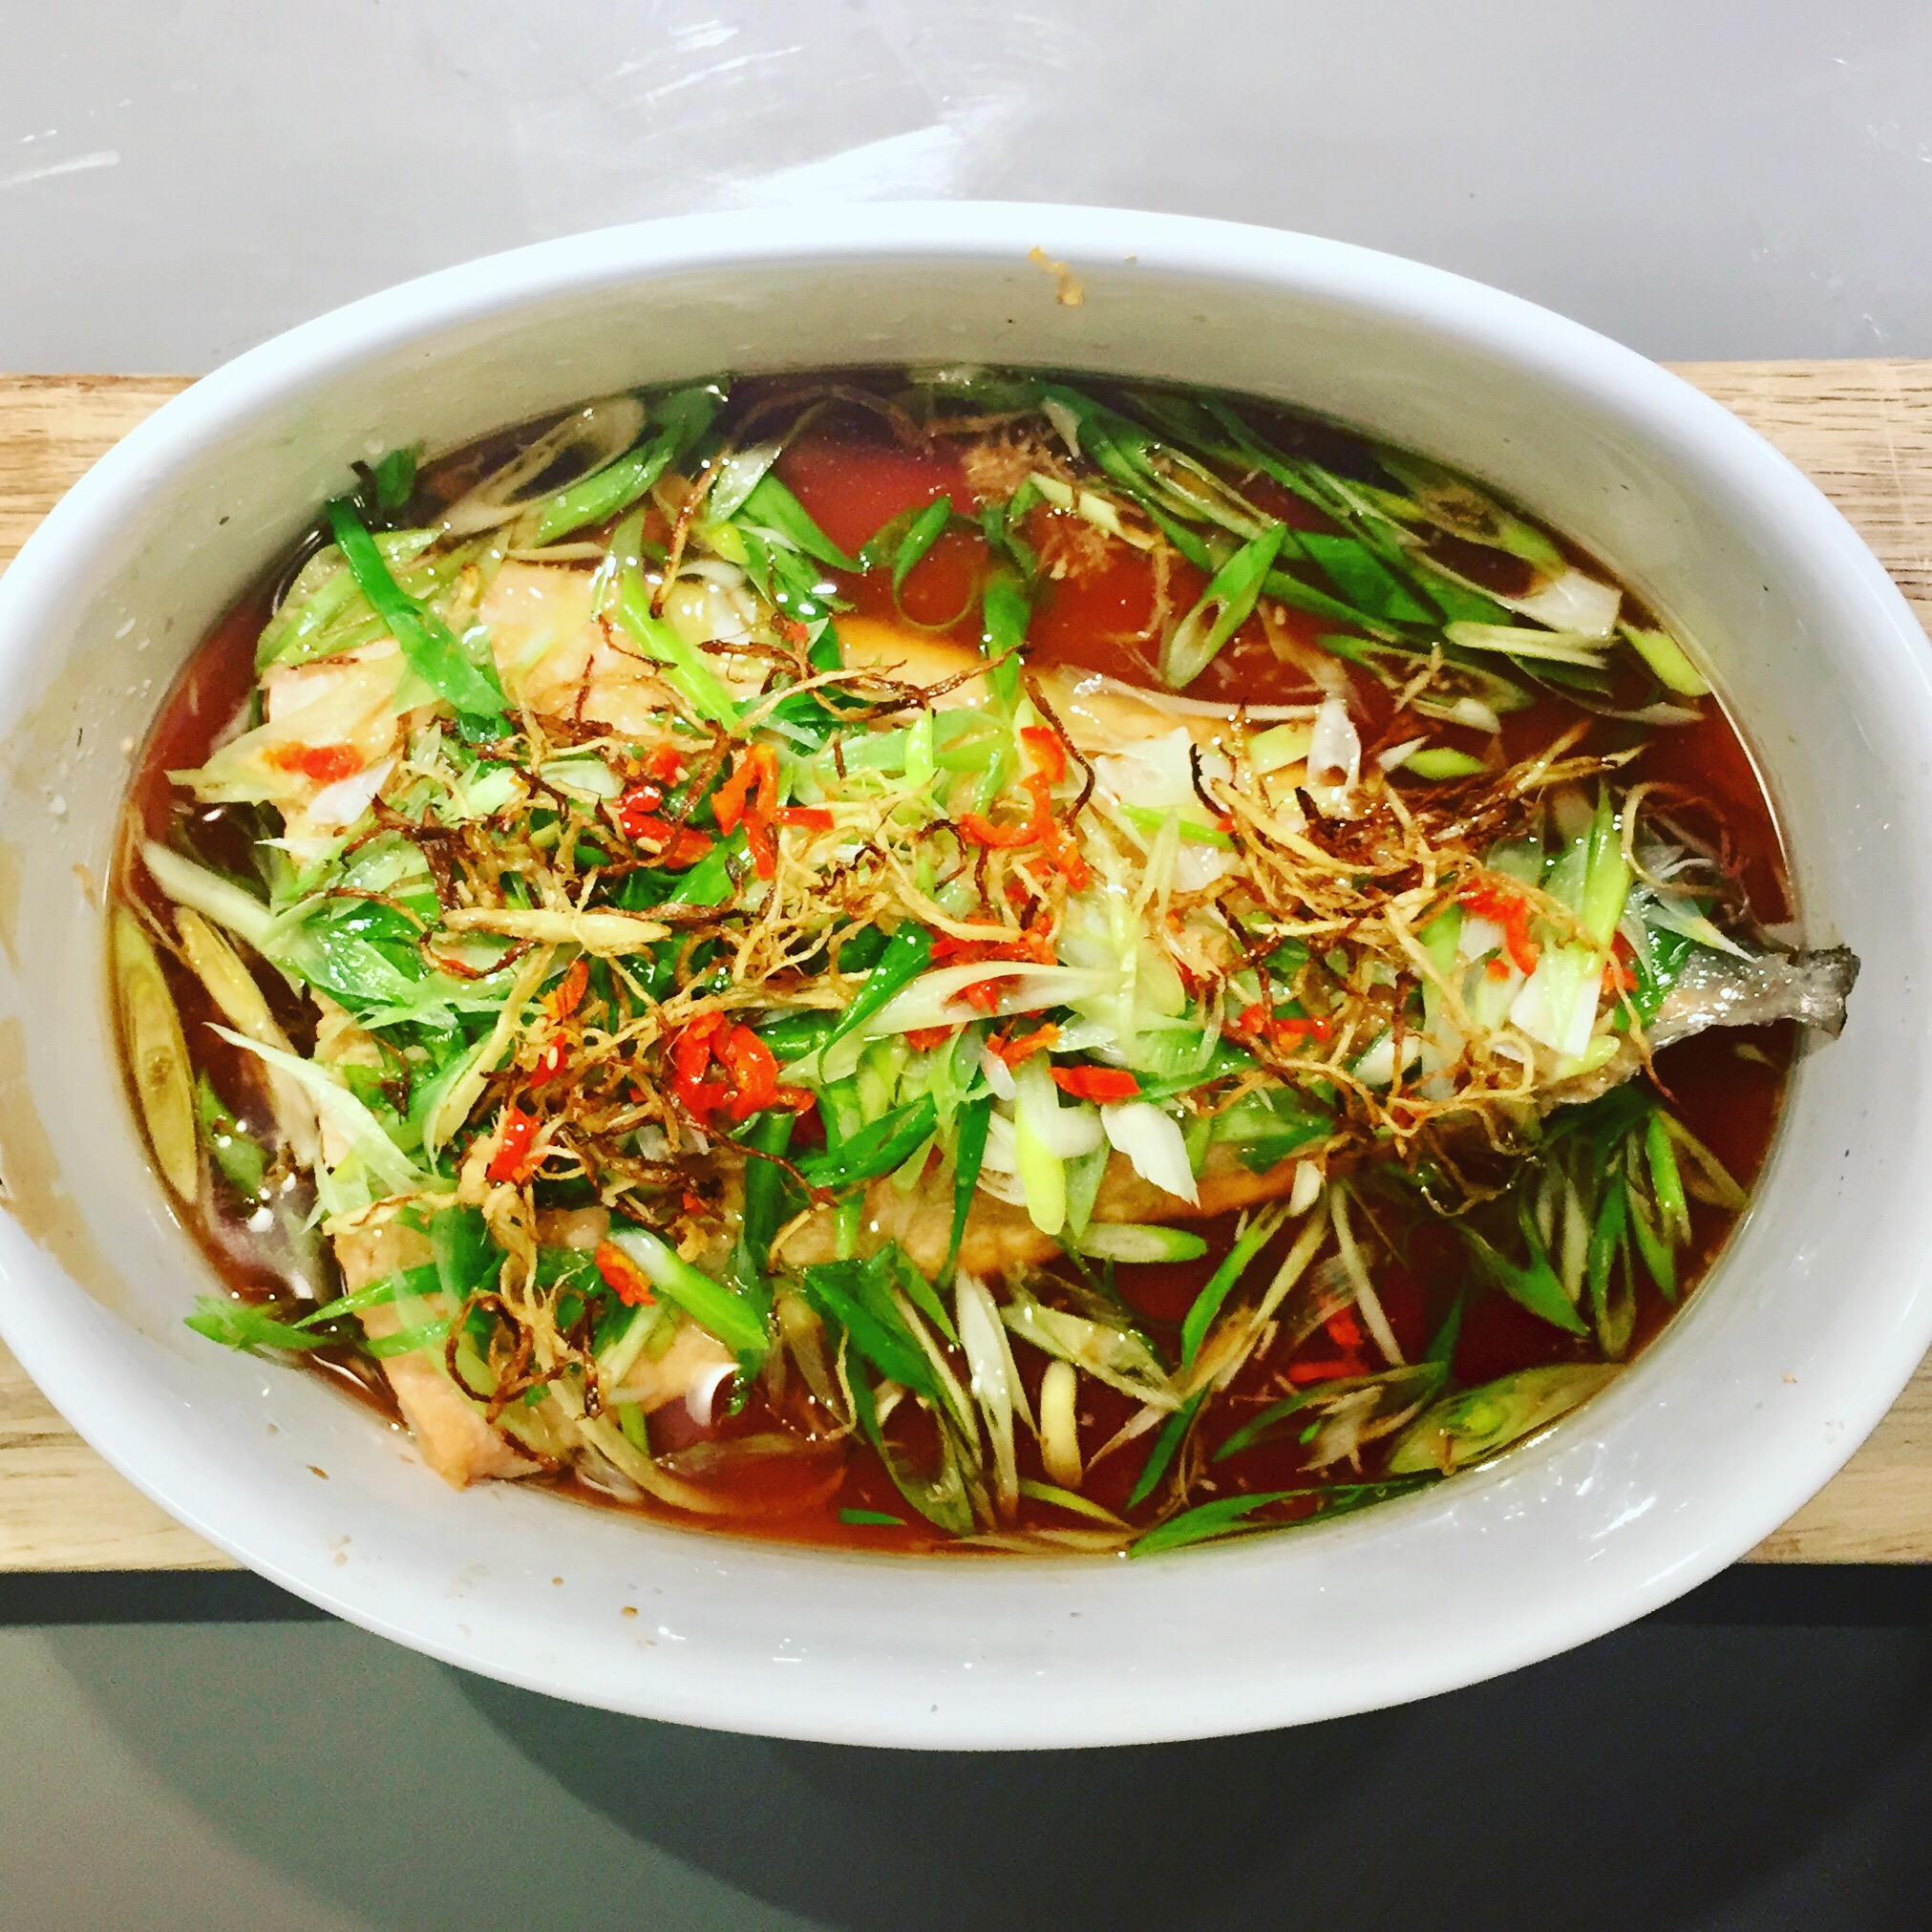 Secret Chilli Club Cooking and Tasting Class - Baked Salmon with Ginger & Spring Onion